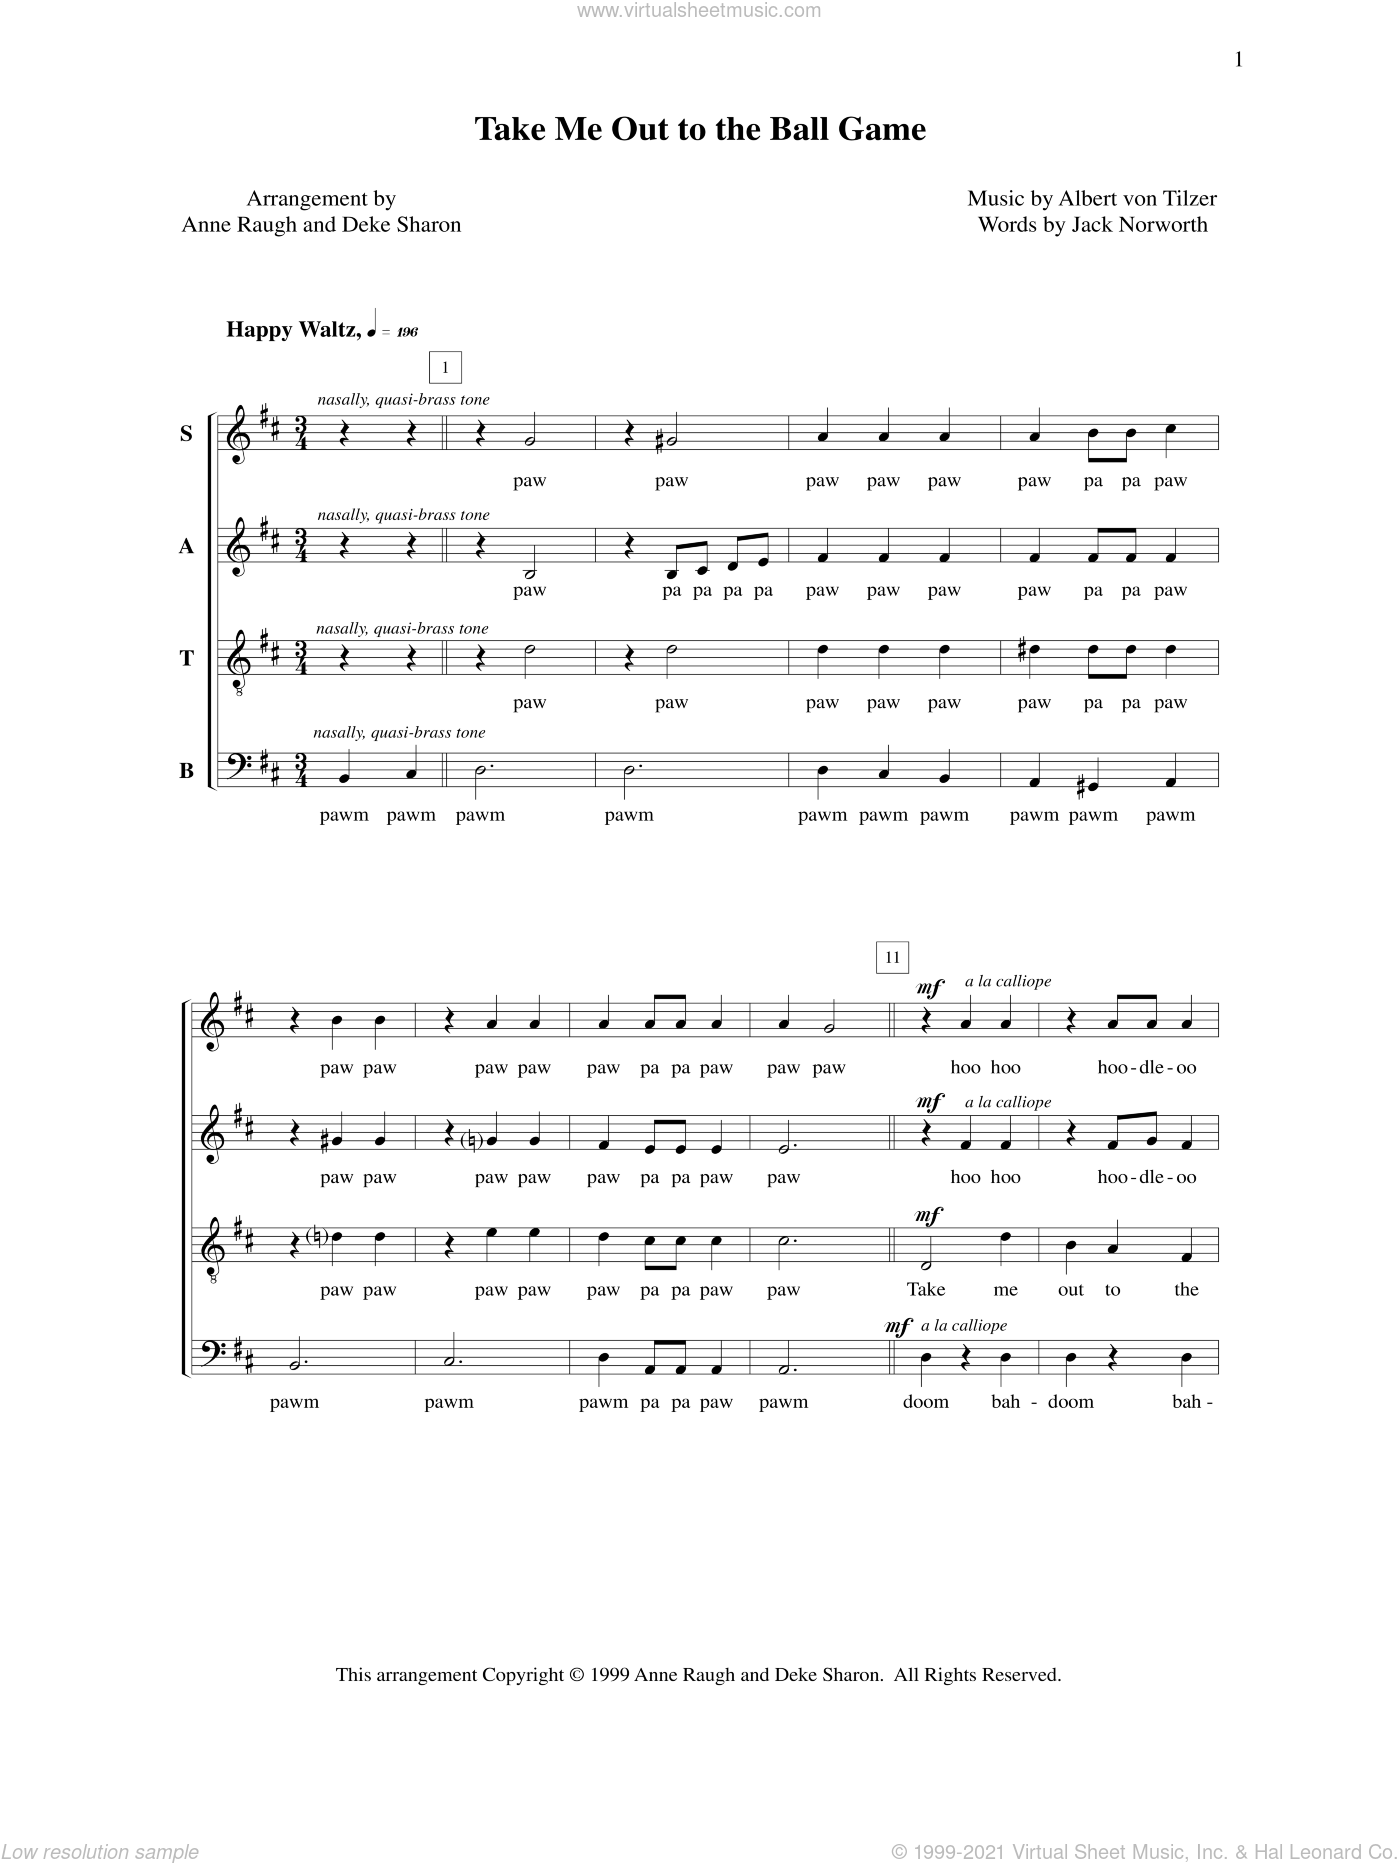 Take Me Out To The Ball Game sheet music for choir by Deke Sharon, Albert von Tilzer, Anne Raugh and Jack Norworth, intermediate